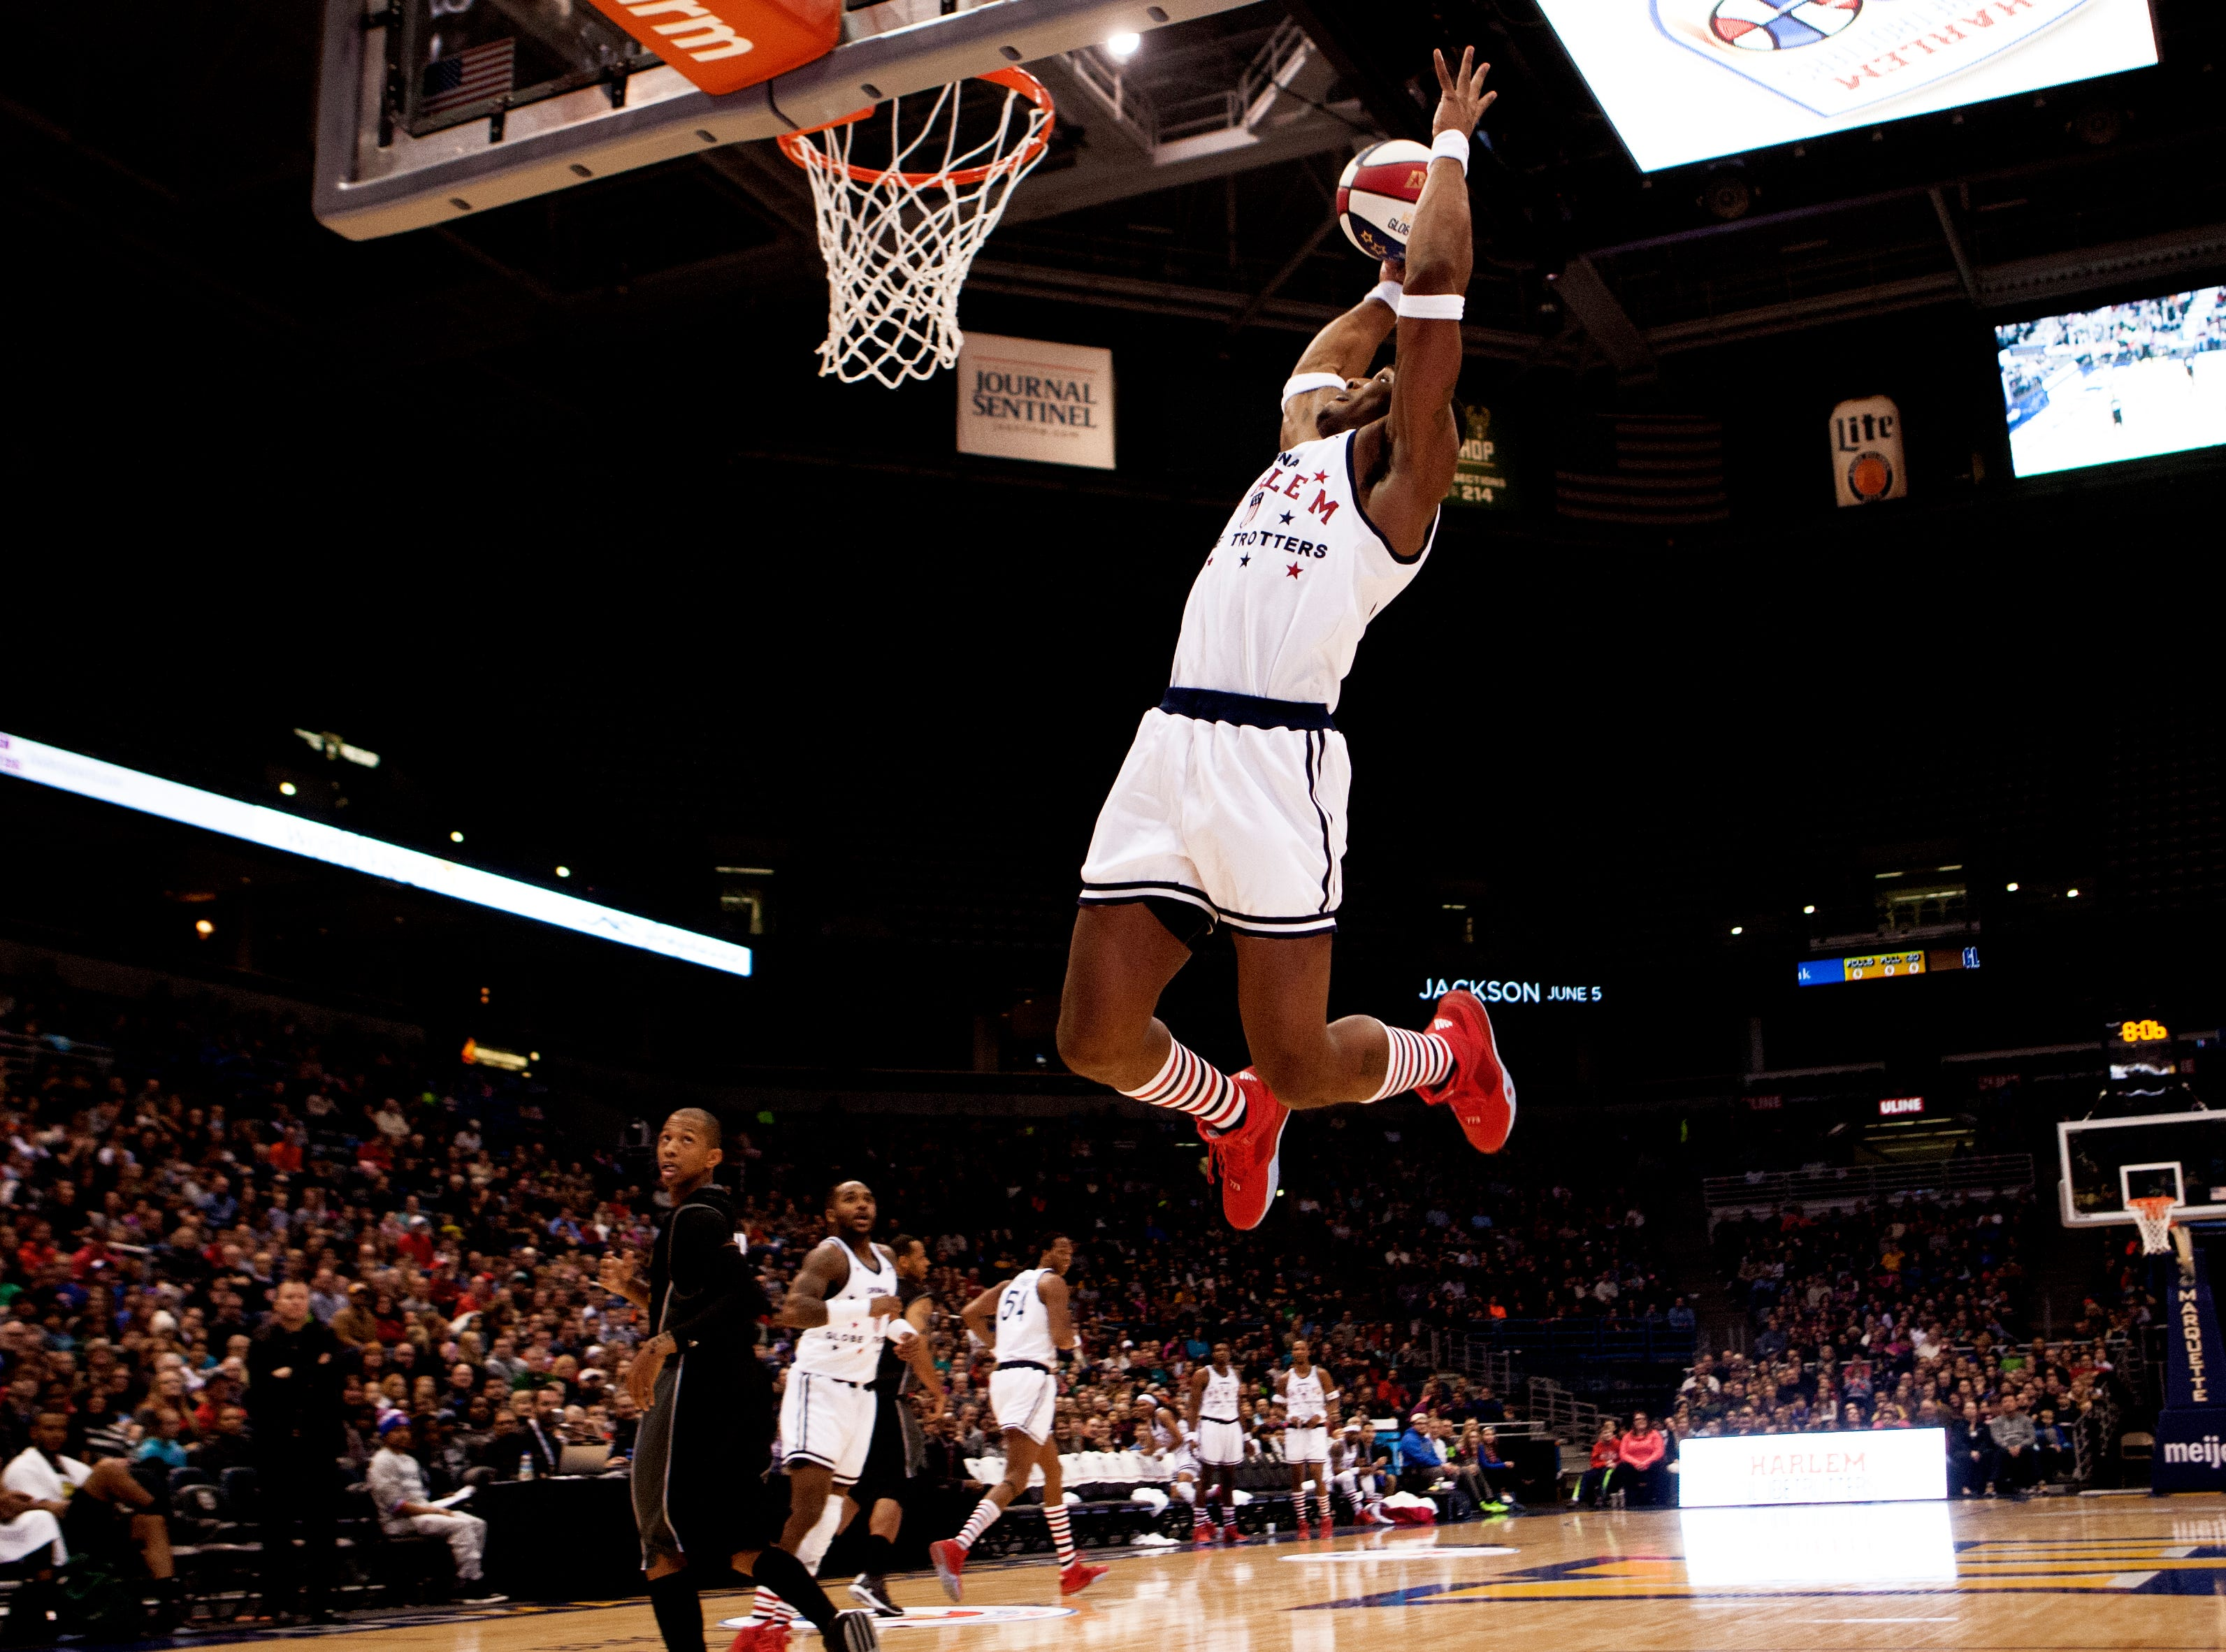 Harlem Globetrotters Thunder (34) dunks during a game at the BMO Harris Bradley Center in Milwaukee on Dec. 31, 2015.